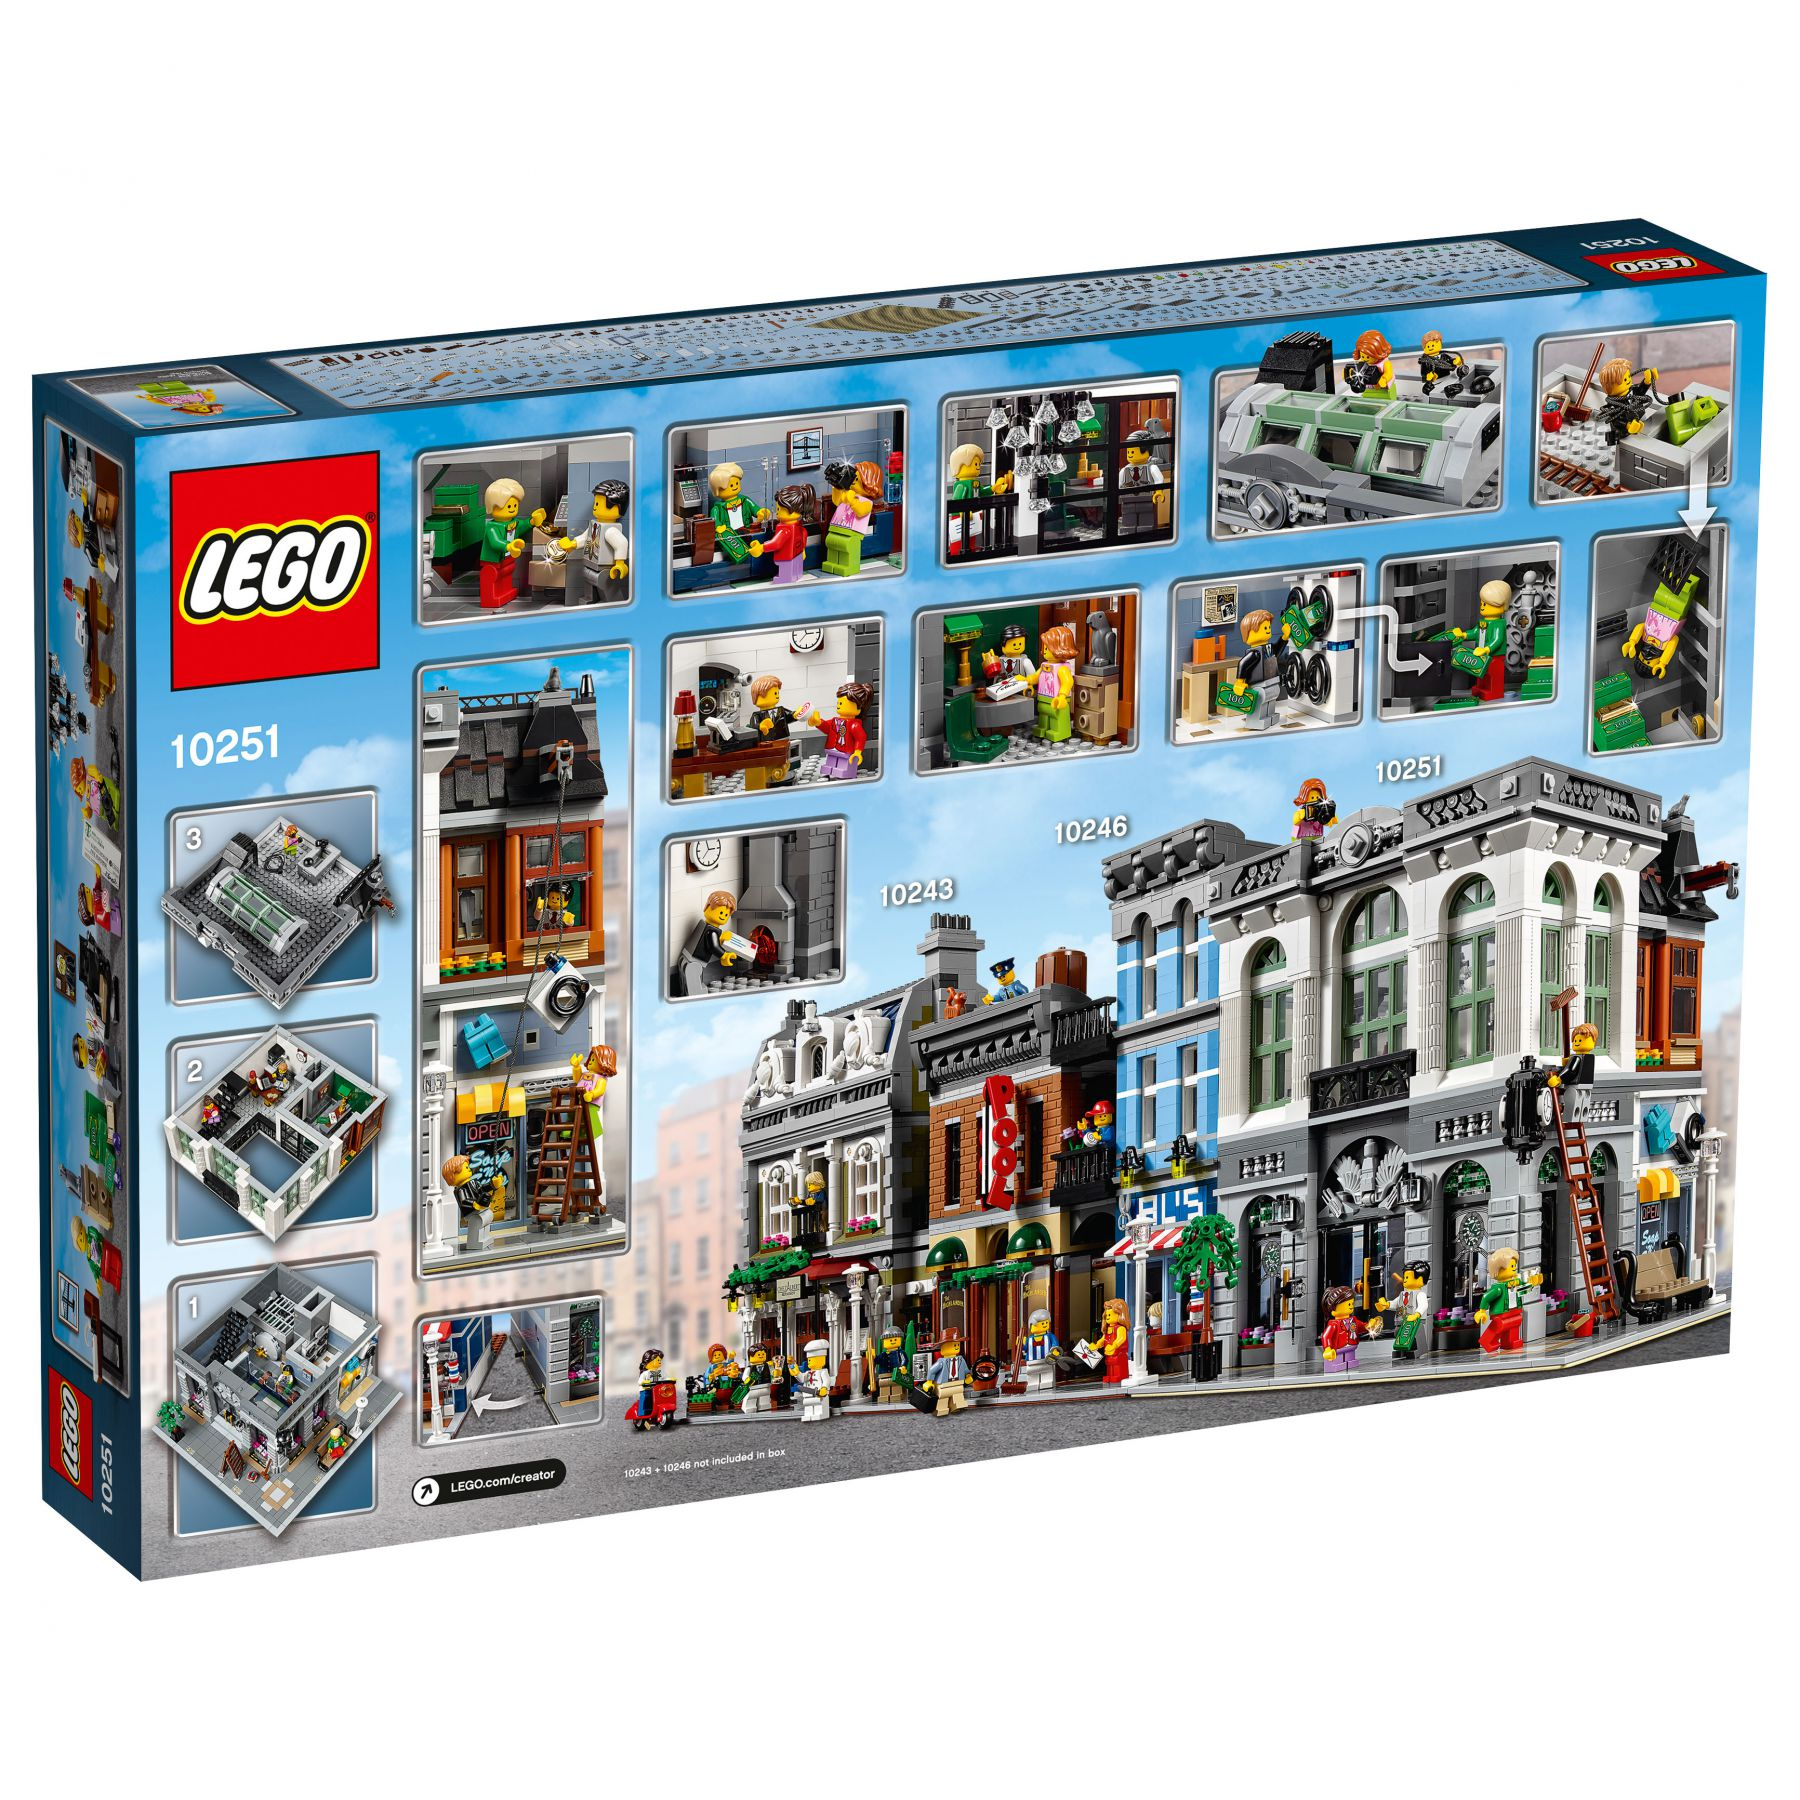 LEGO Advanced Models 10251 Steine-Bank 10251_Brick_Bank_02.jpg